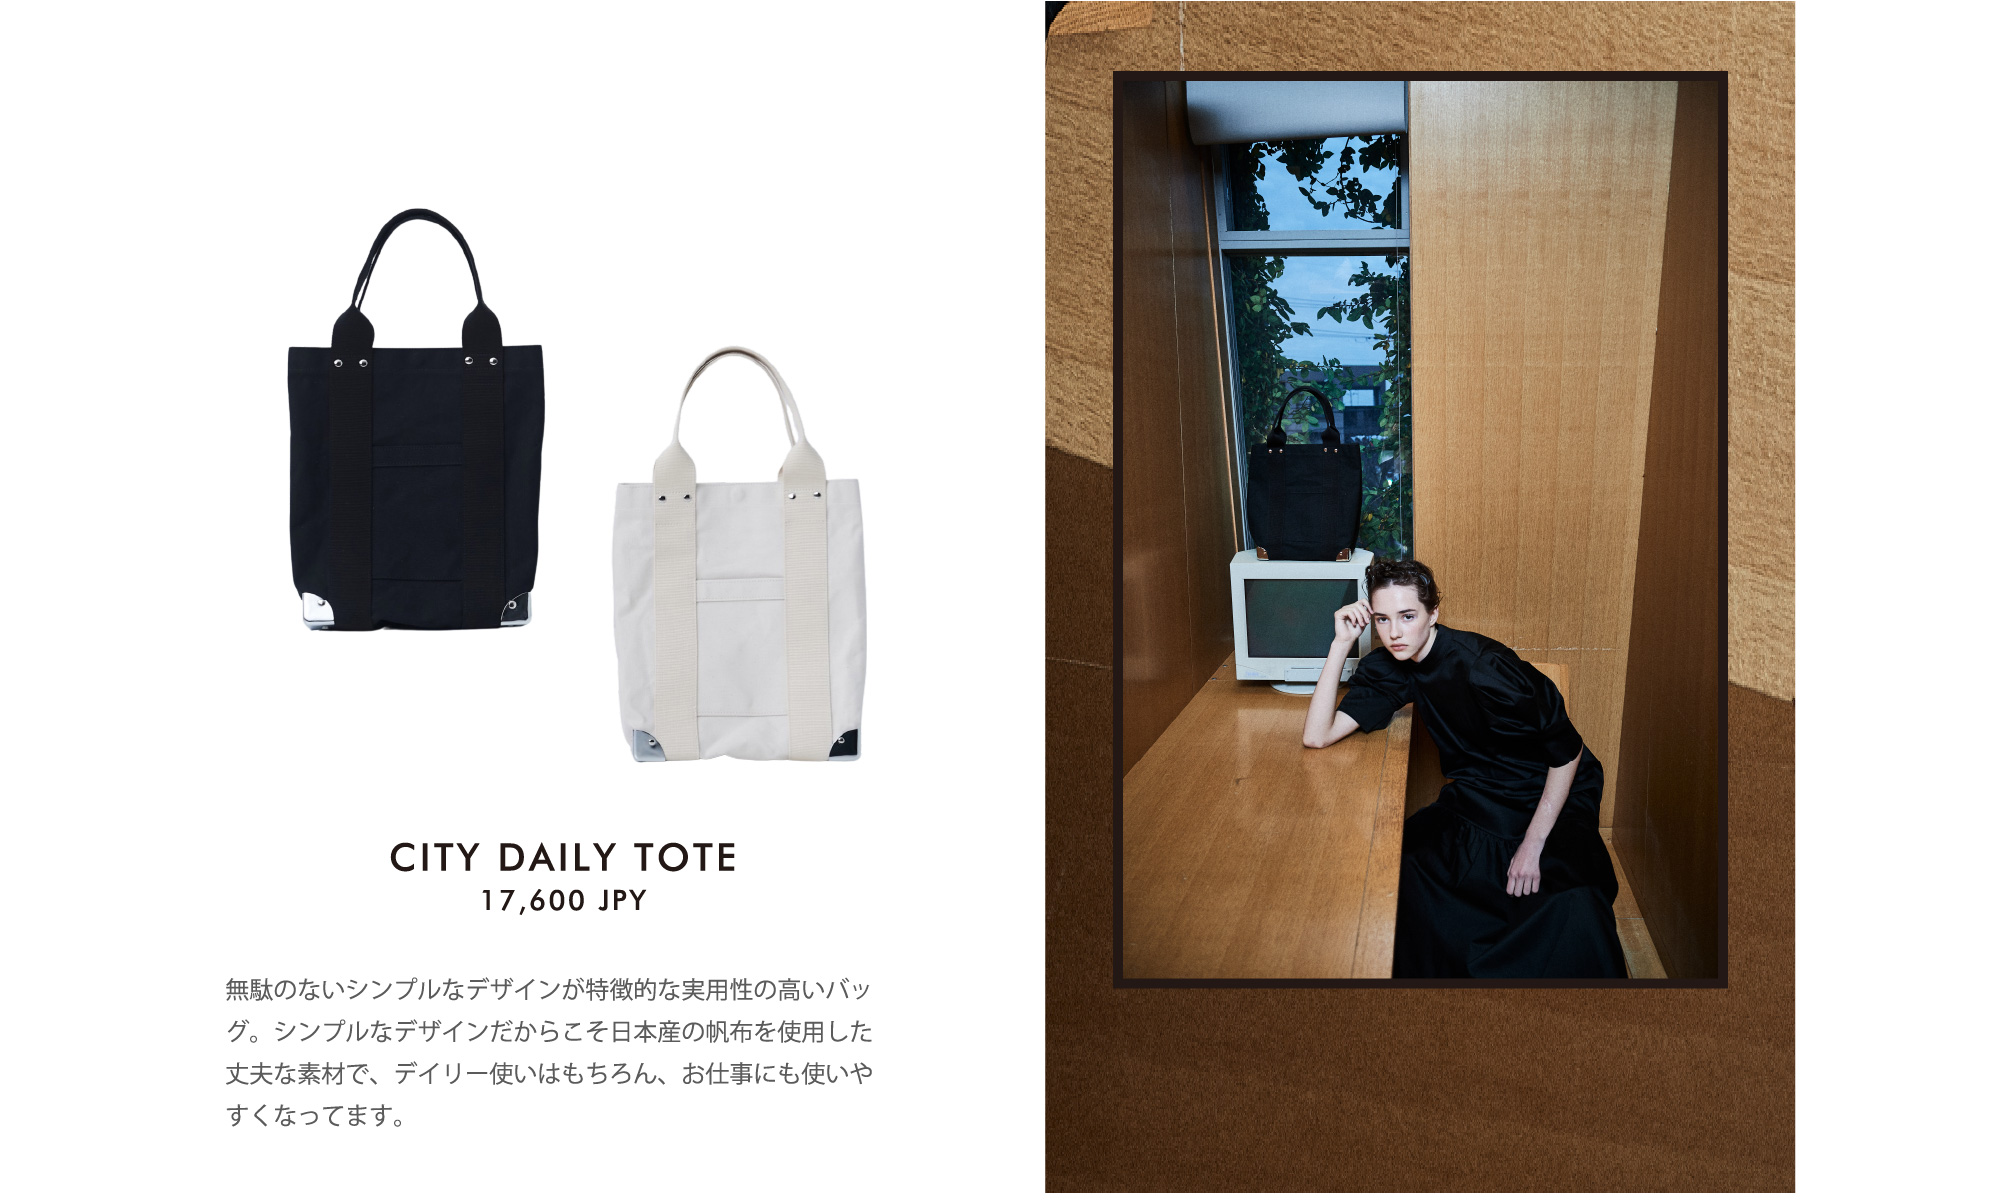 CITY DAILY TOTE